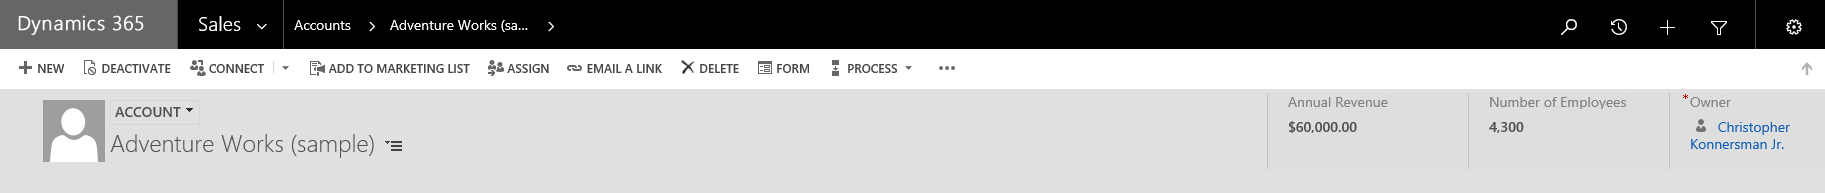 2 lines of values accepted in field labels in headers in new UI